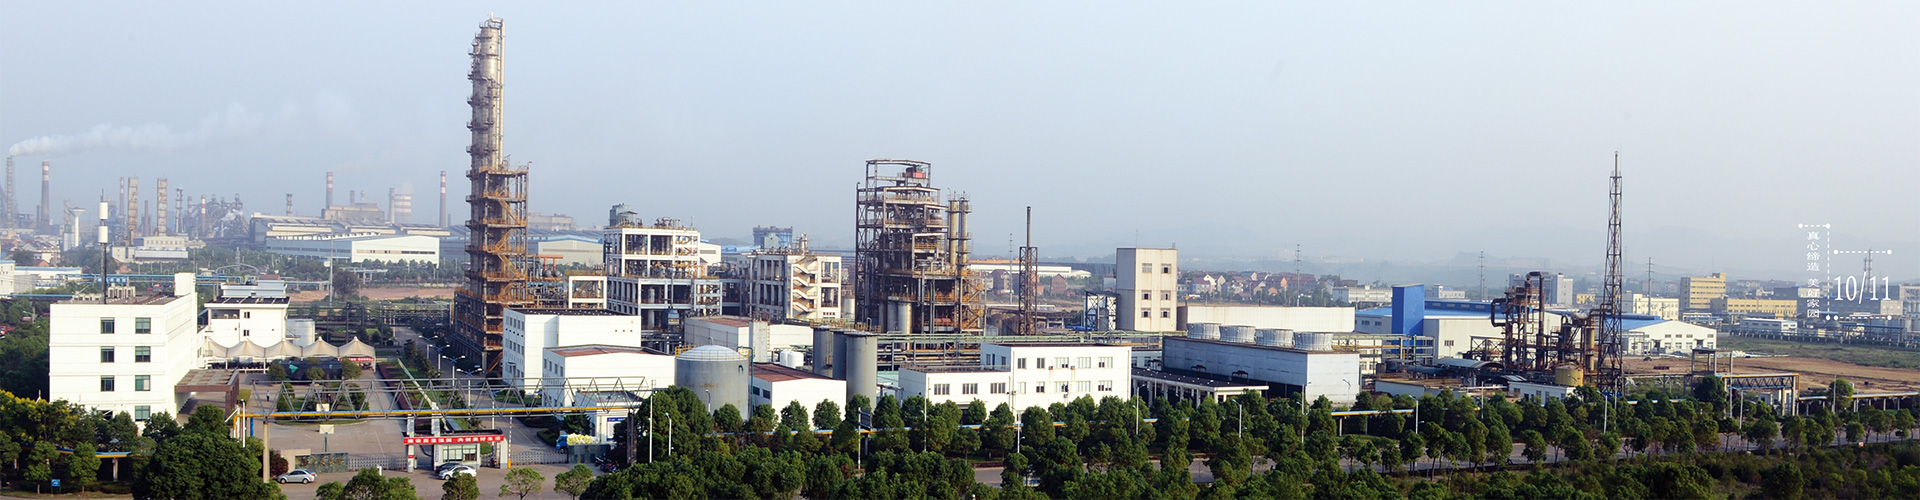 OUR INDUSTRIAL PARK